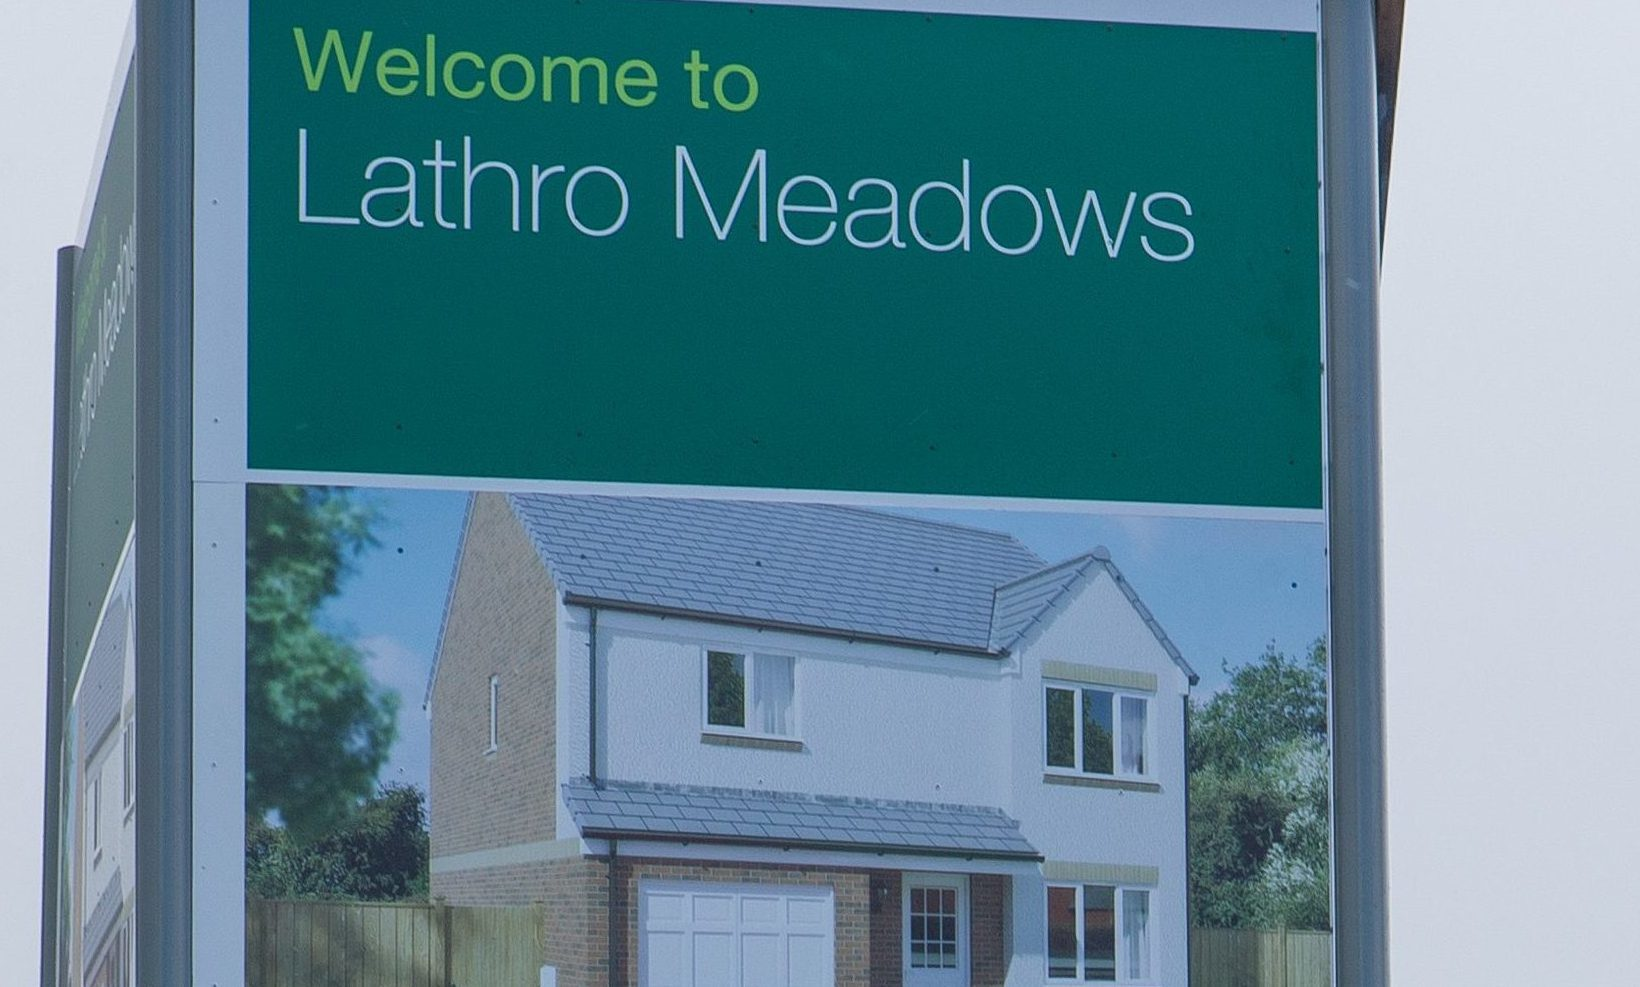 Issues have been raised at the Lathro development.